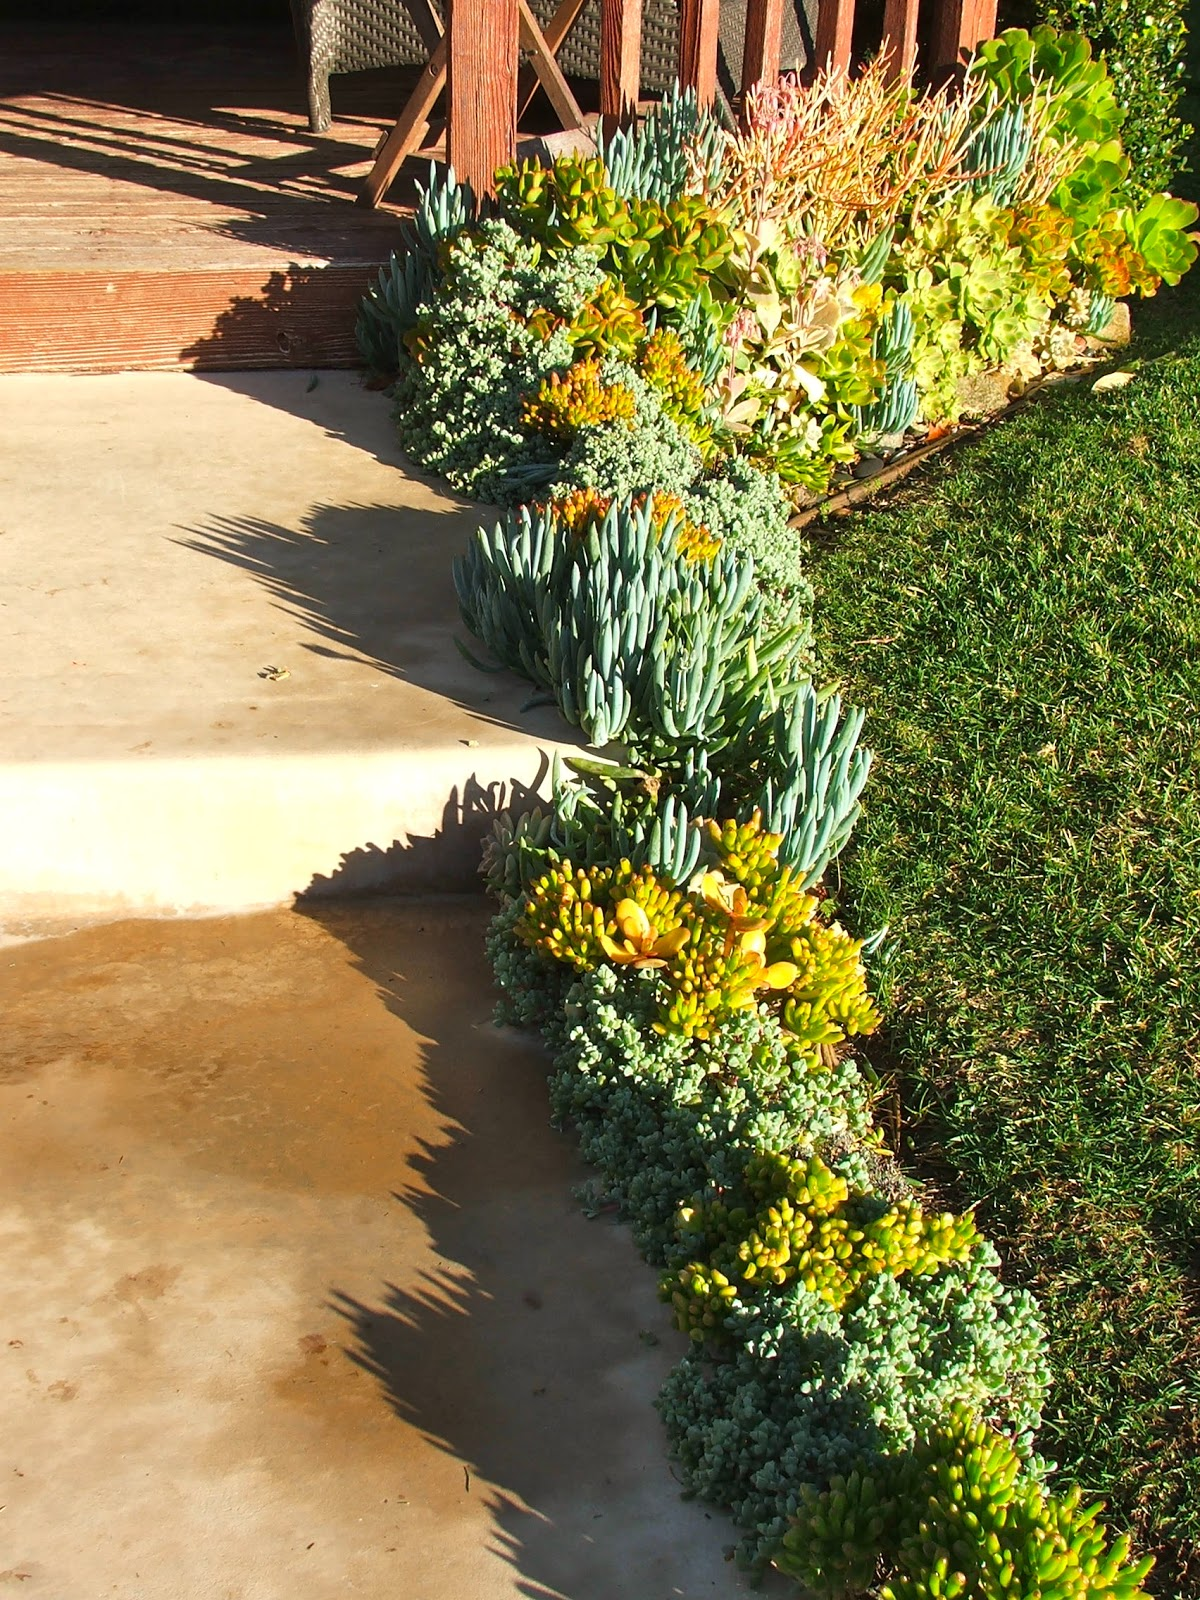 Garden and Bliss: Water Wise Succulent Gardens